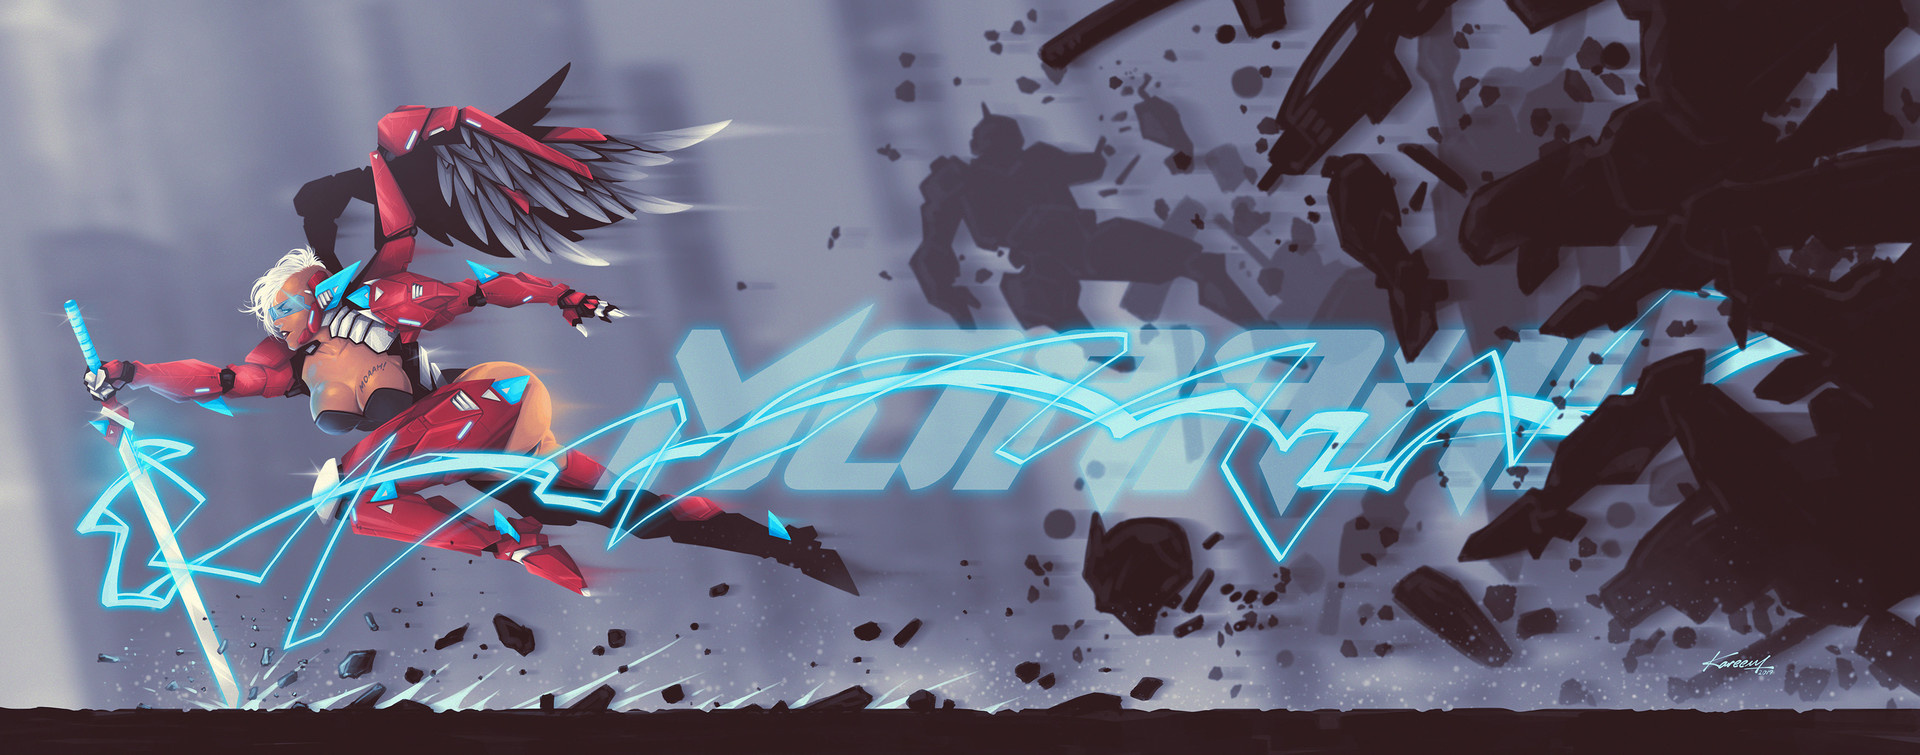 Final Concept for fighting scene.